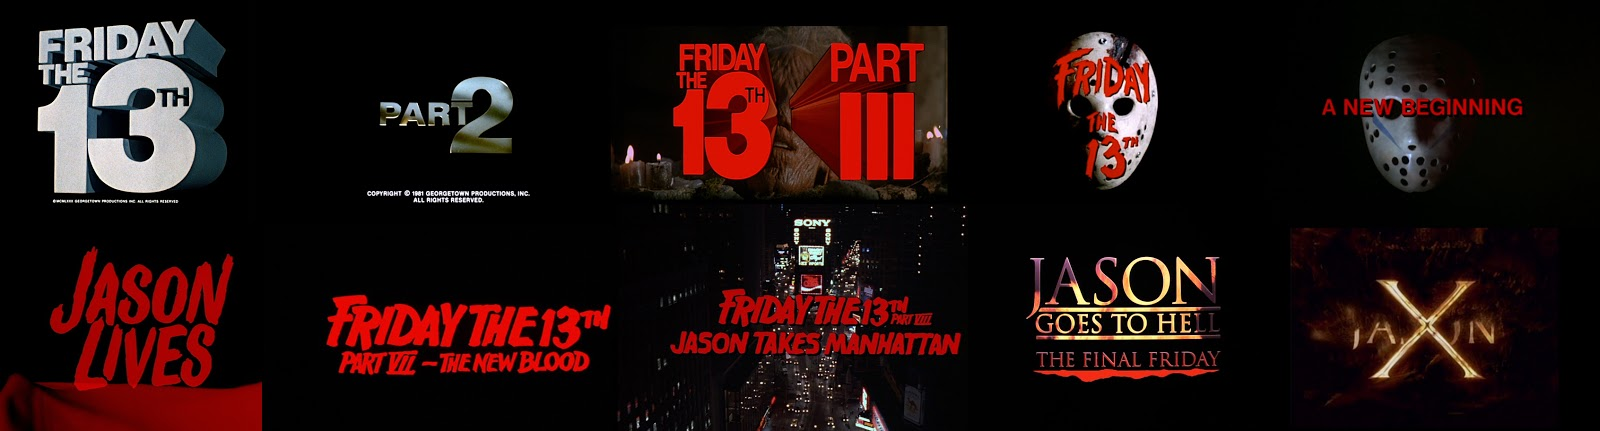 geektastic film reviews friday the 13th retrospective